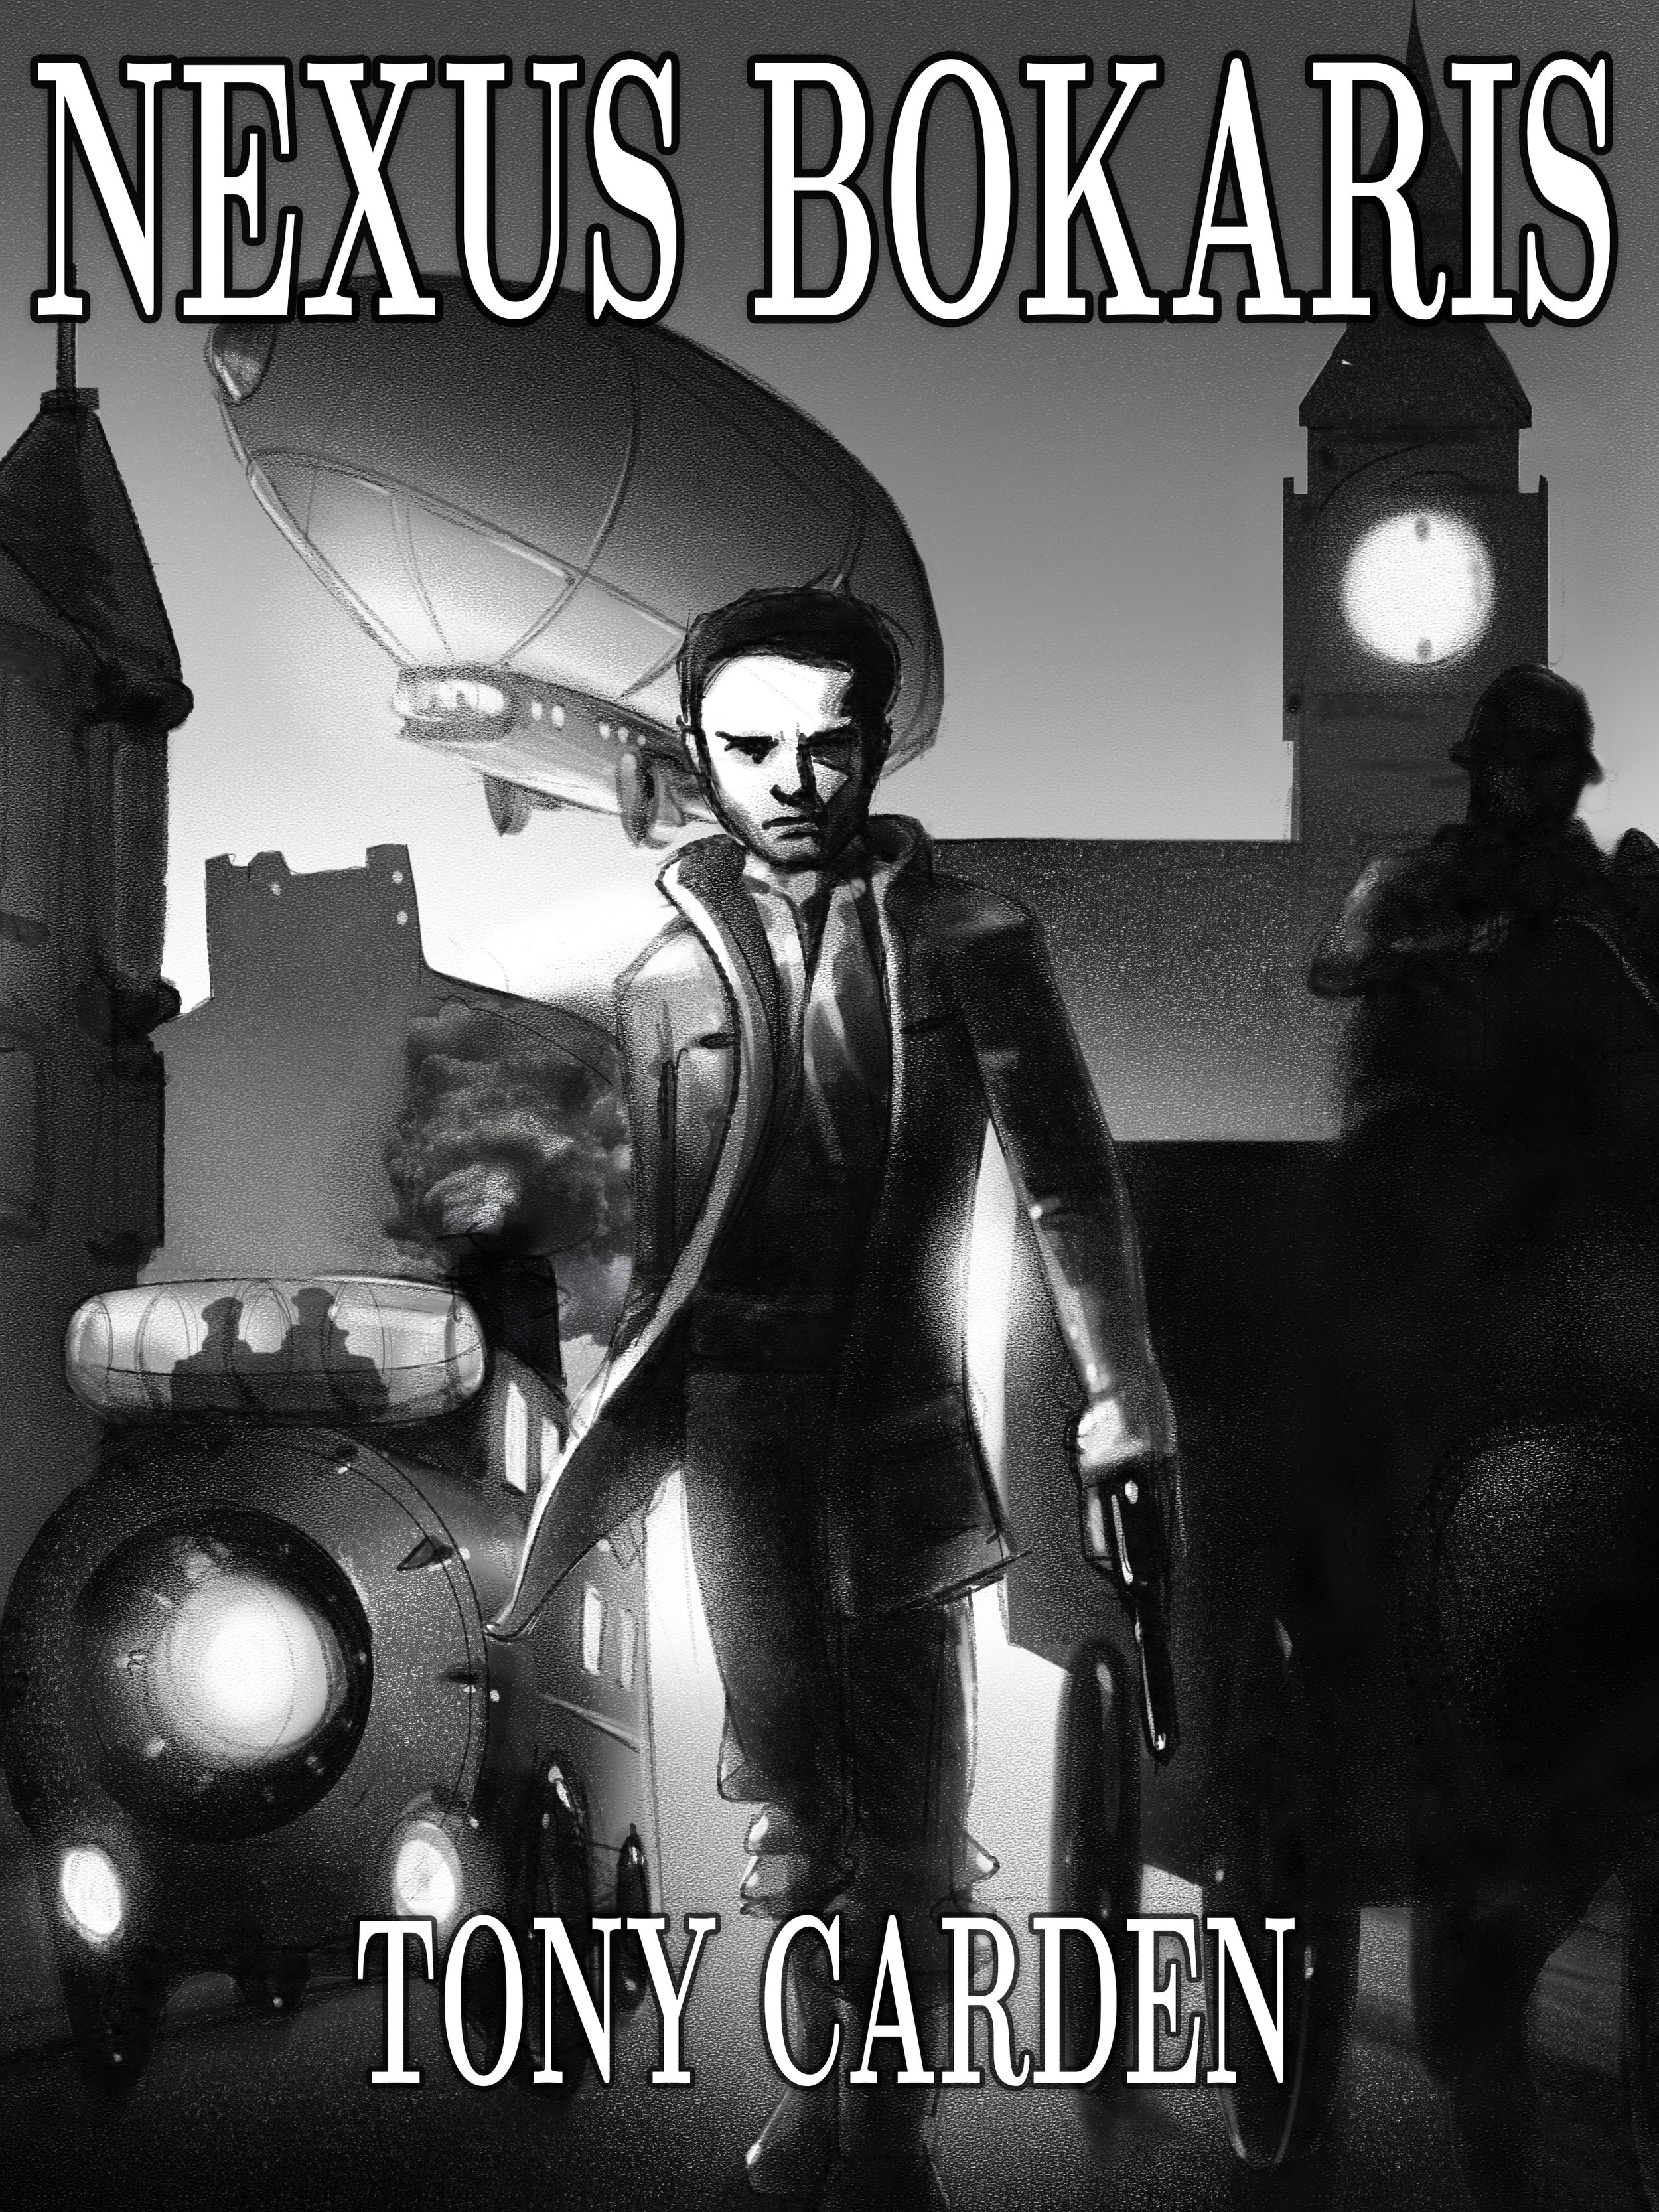 Nexus Bokharis: A Steampunk Novel - In a world dominated by big powers, the British Empire is facing attack and only the agents of the Bureau can work to stop the enemy's plans. Lafayette Dalton, ex-soldier and now Metropolitan Policeman, is recruited into the Bureau's ranks to act as guard to Viceroy Curzon on a tour of India.